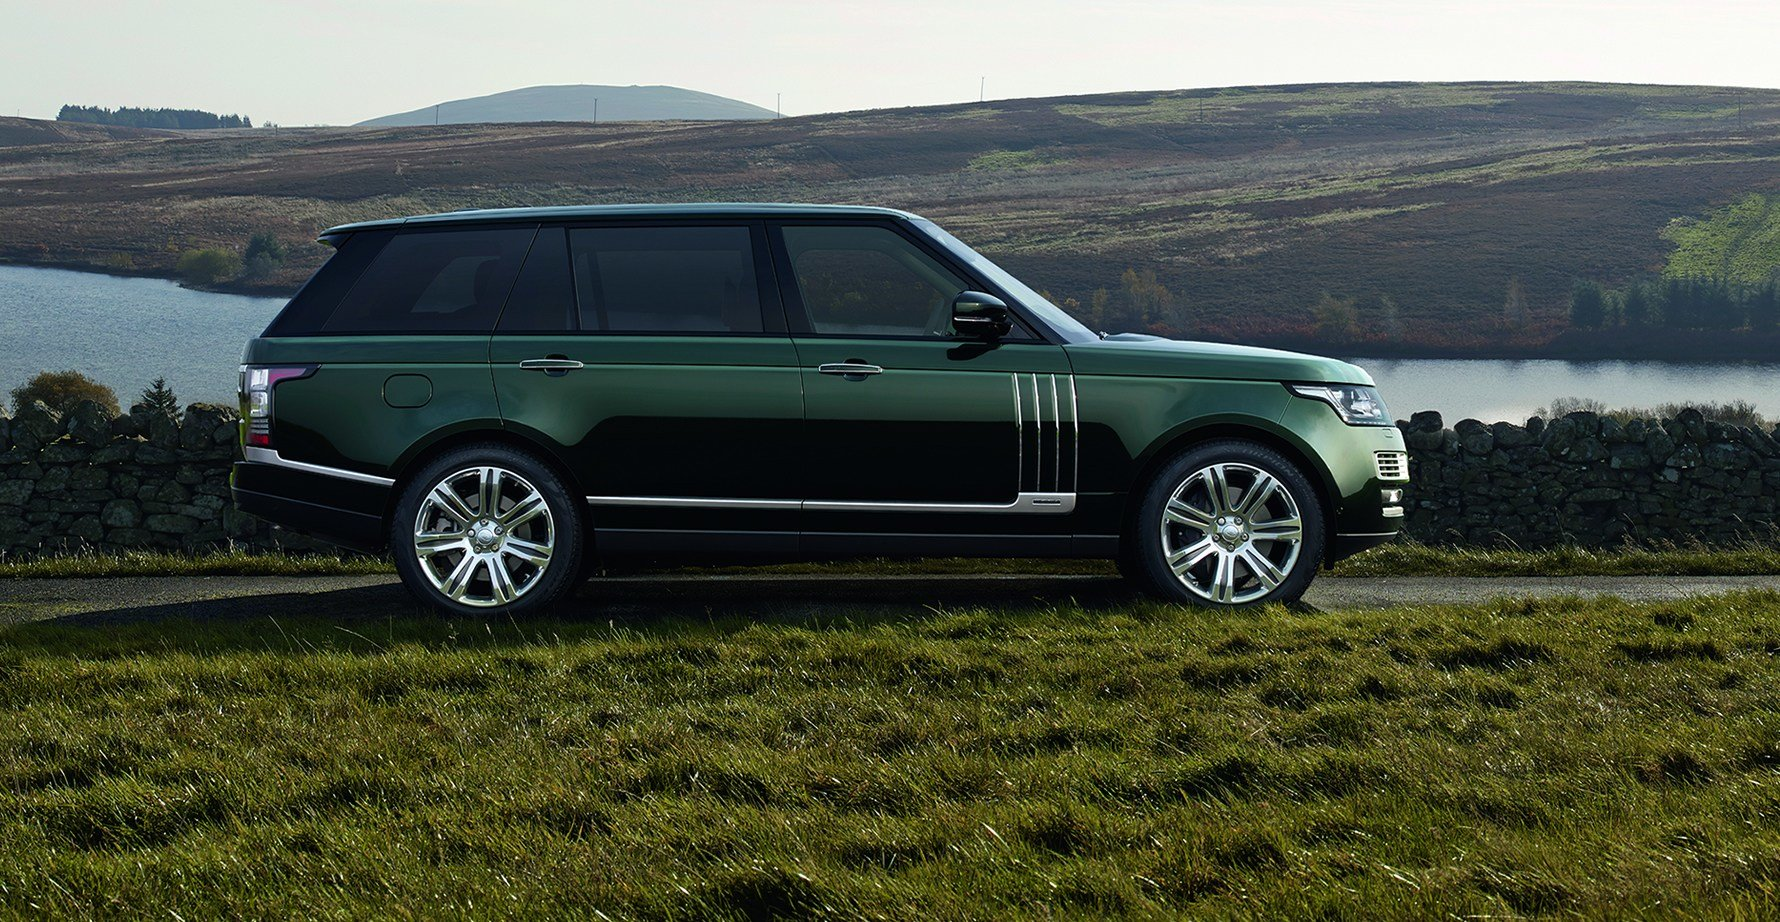 New British Luxury Car The Holland Holland Range Rover On This Month